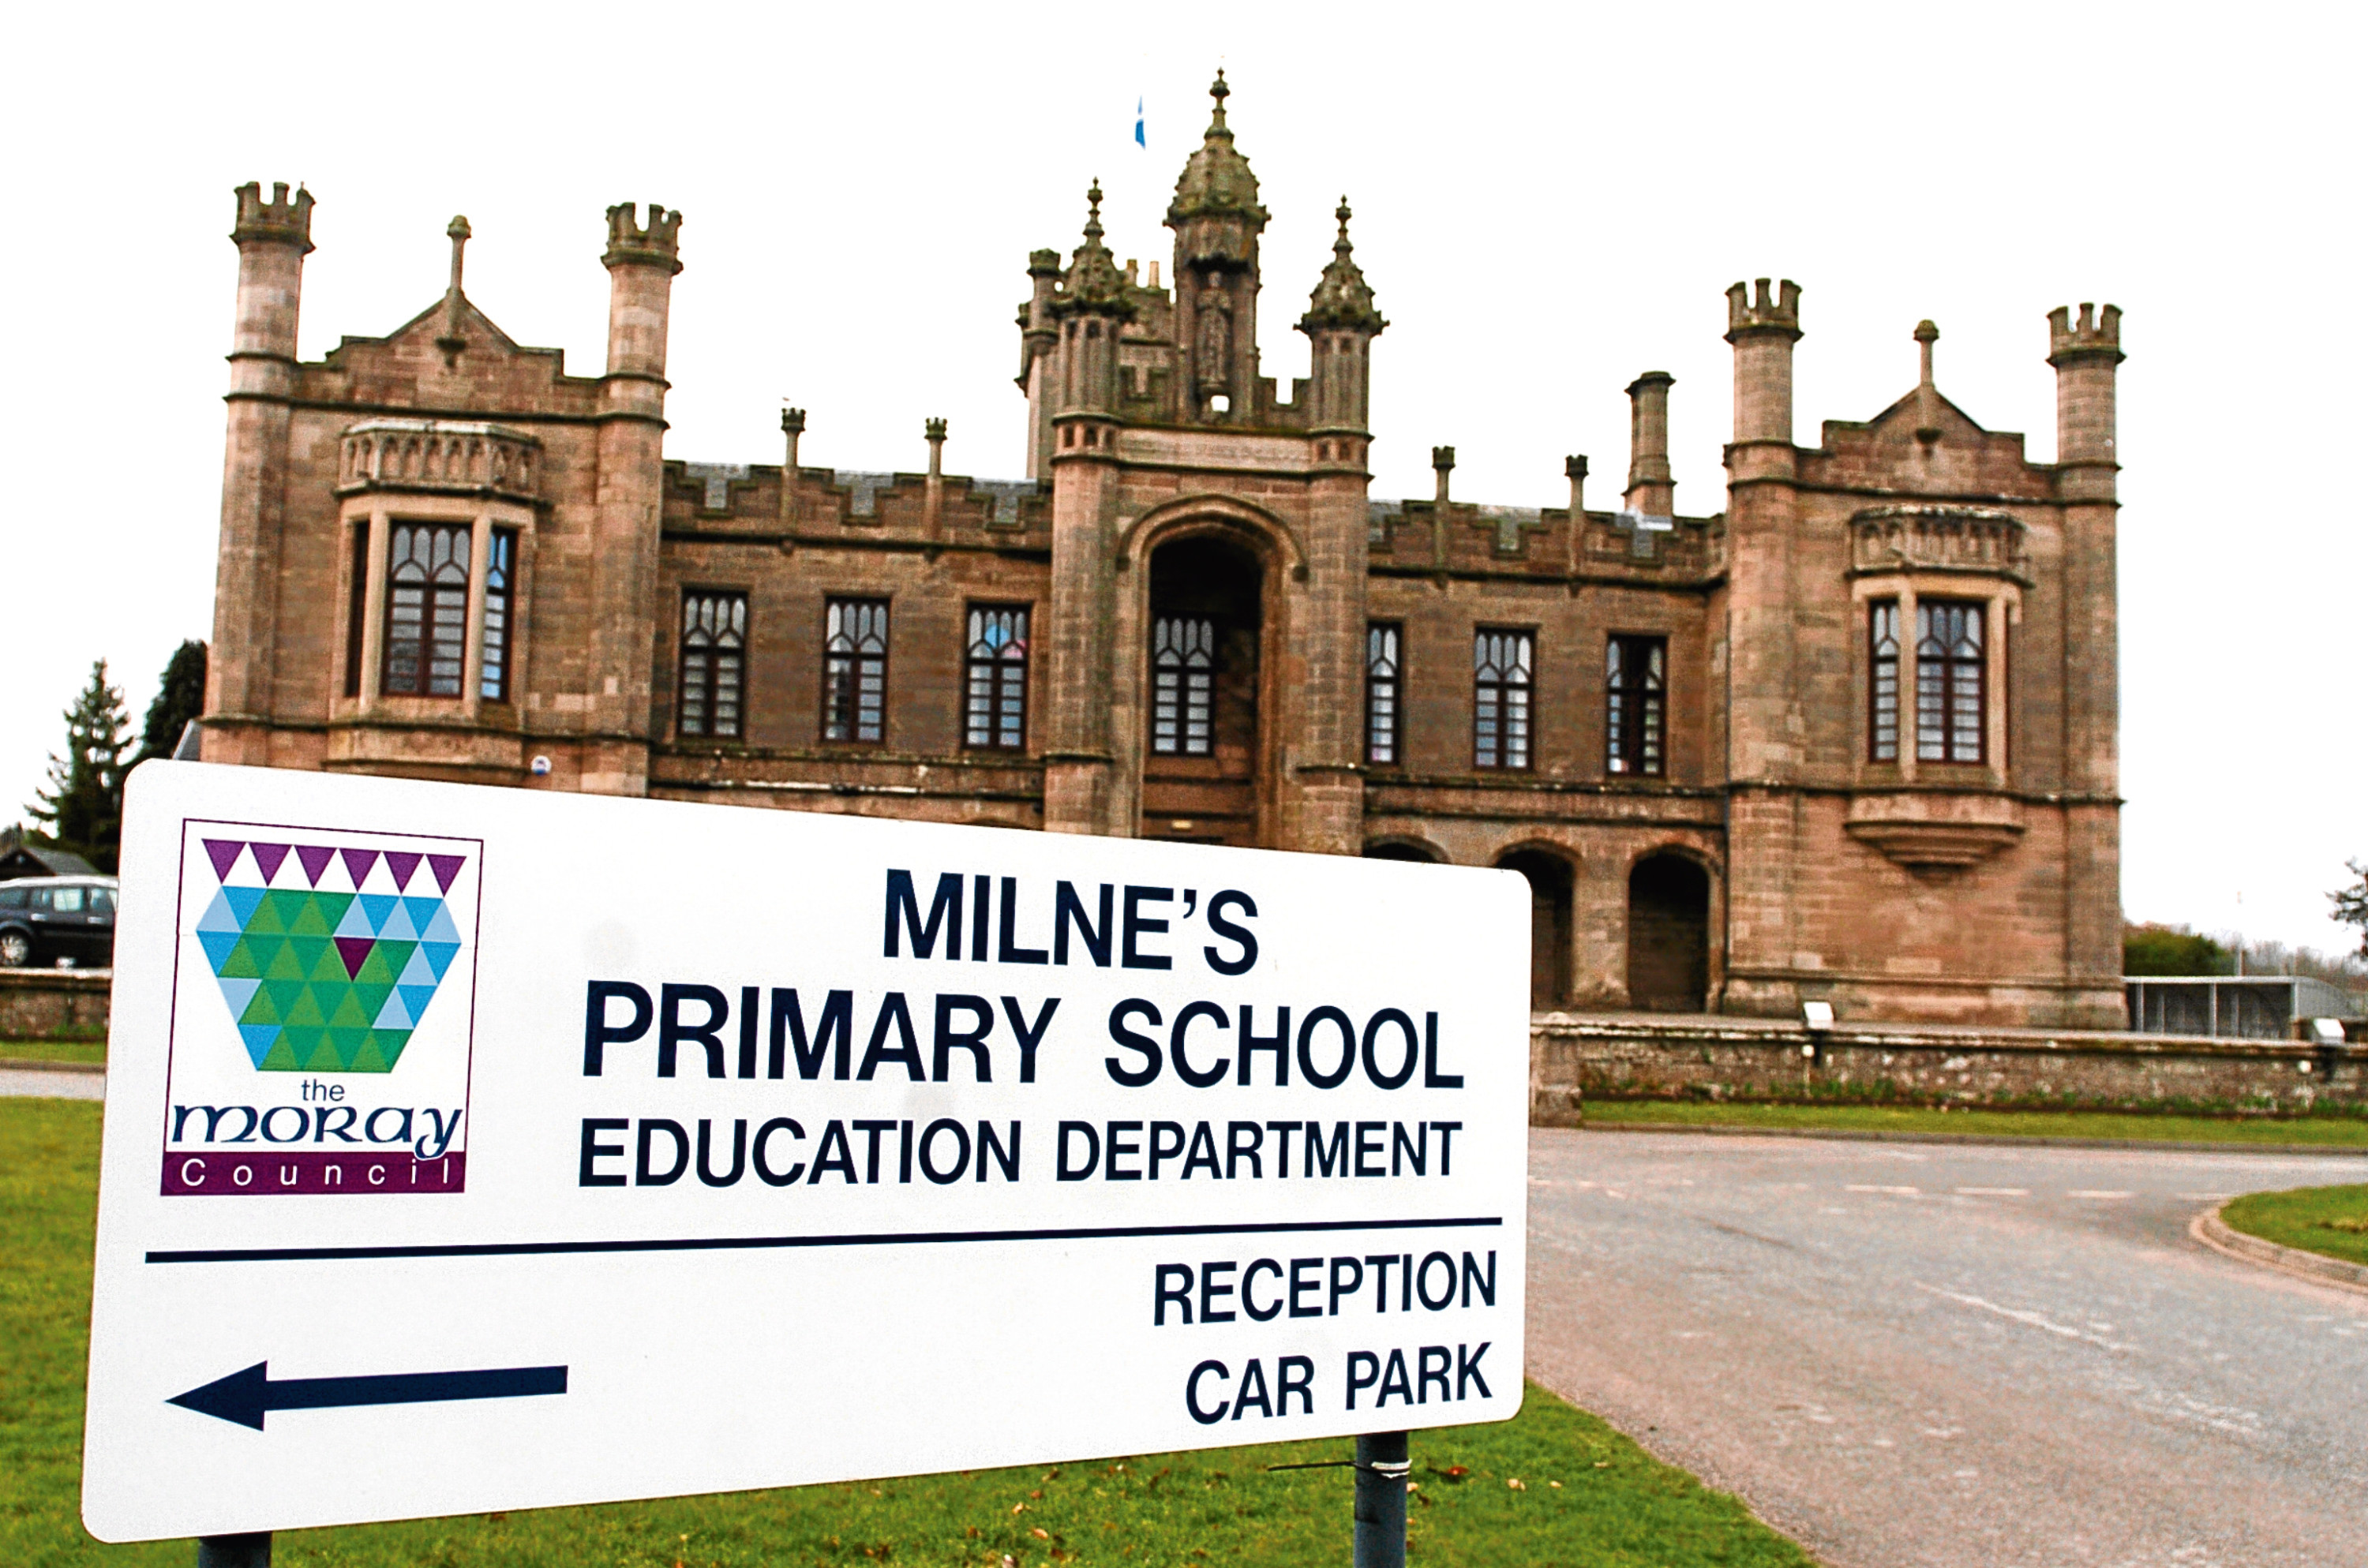 Milne's Primary School in Fochabers.